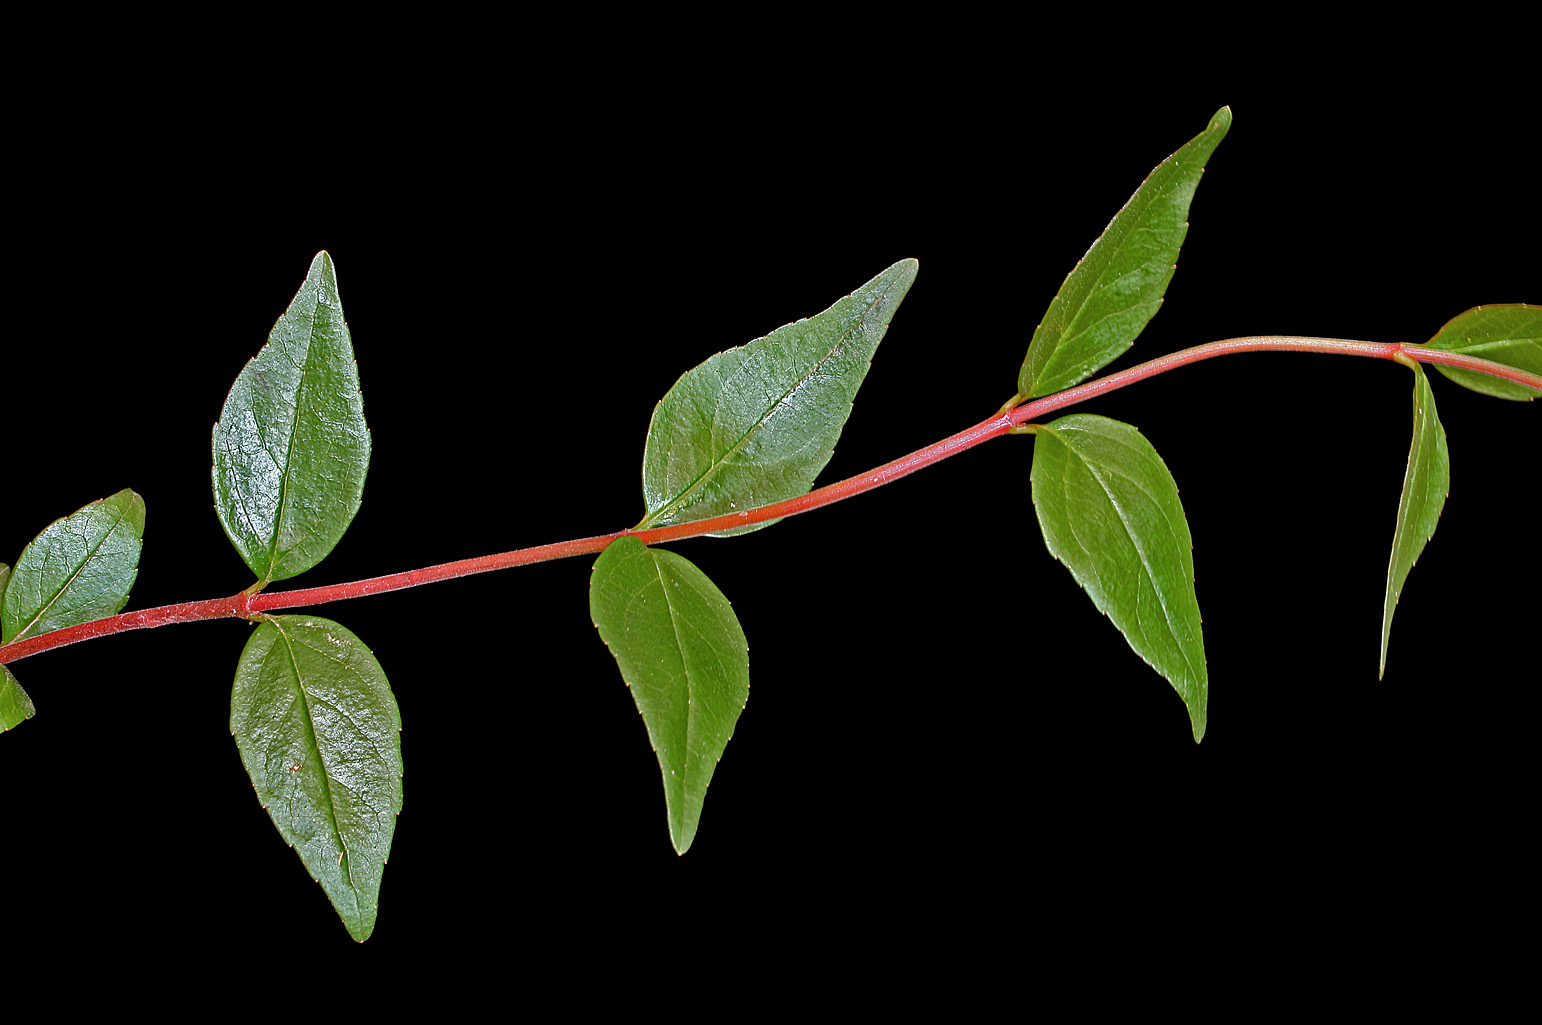 Reddish young branch with ovate leaves